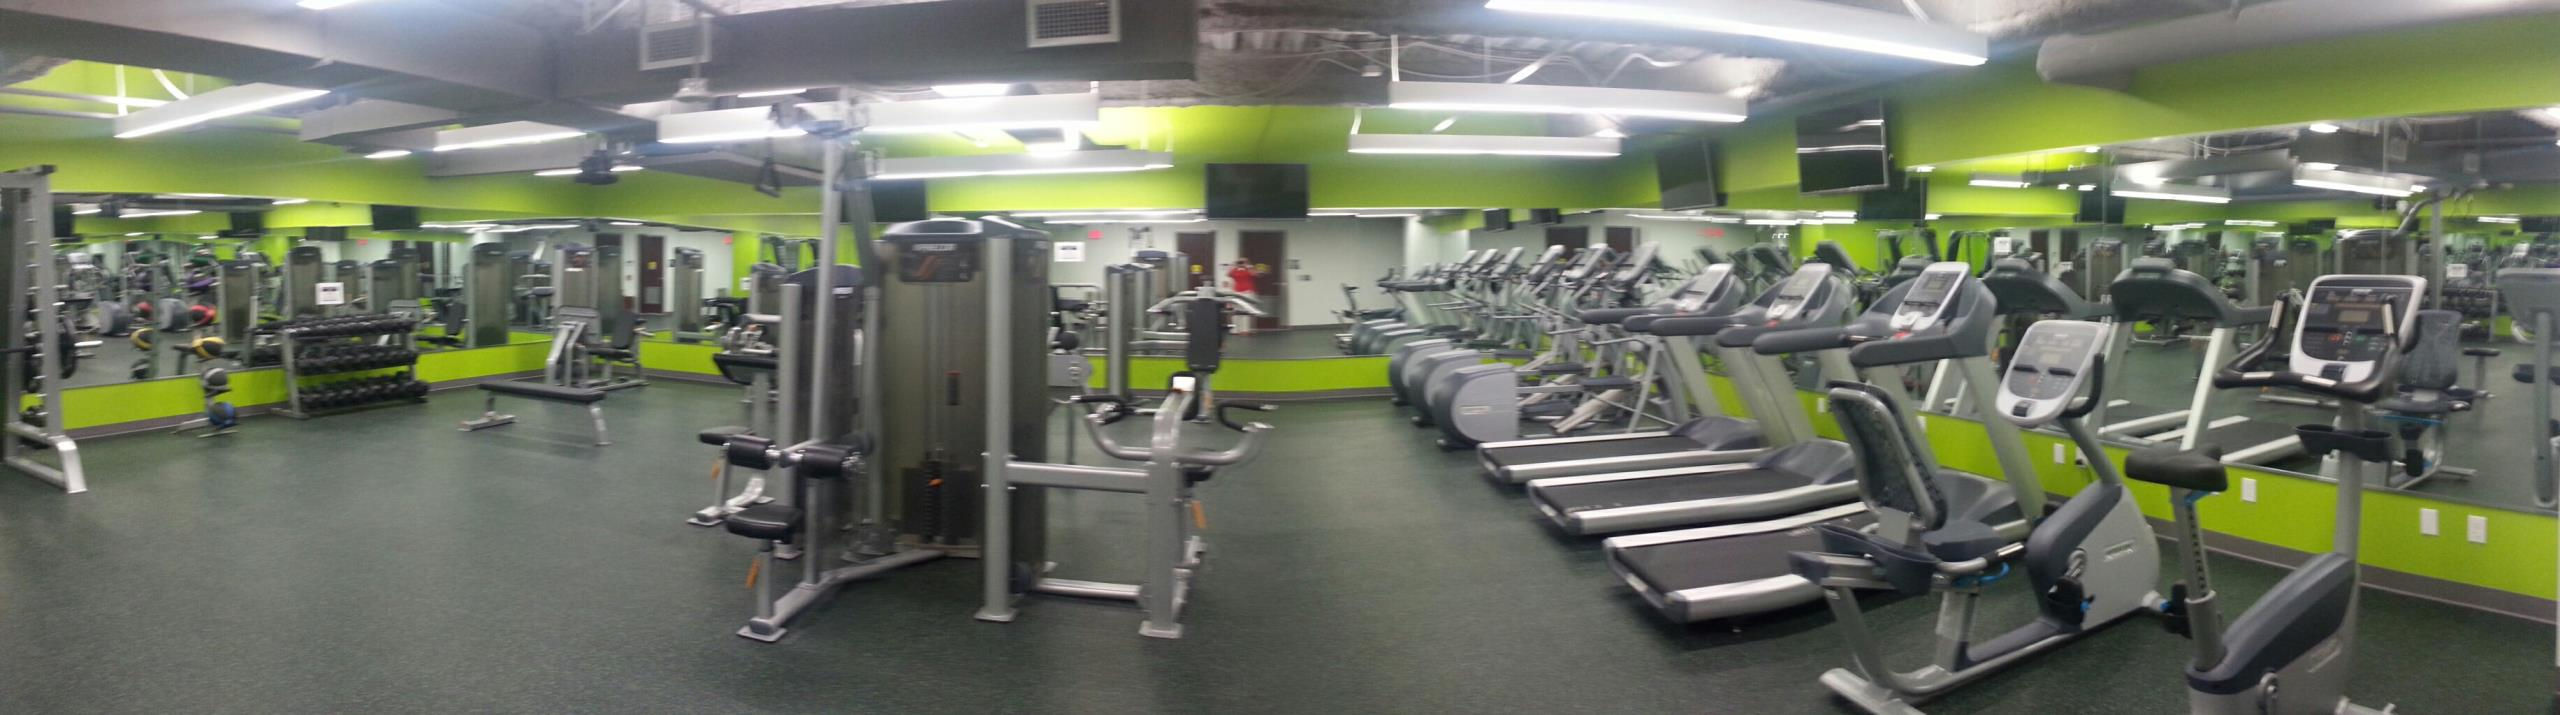 Reston, VA - Our newest addition to our Reston Office space,  a gym with showers, 3 treadmills,  3 elliptical machines,  2 bike machines,  various weights and weight machines!